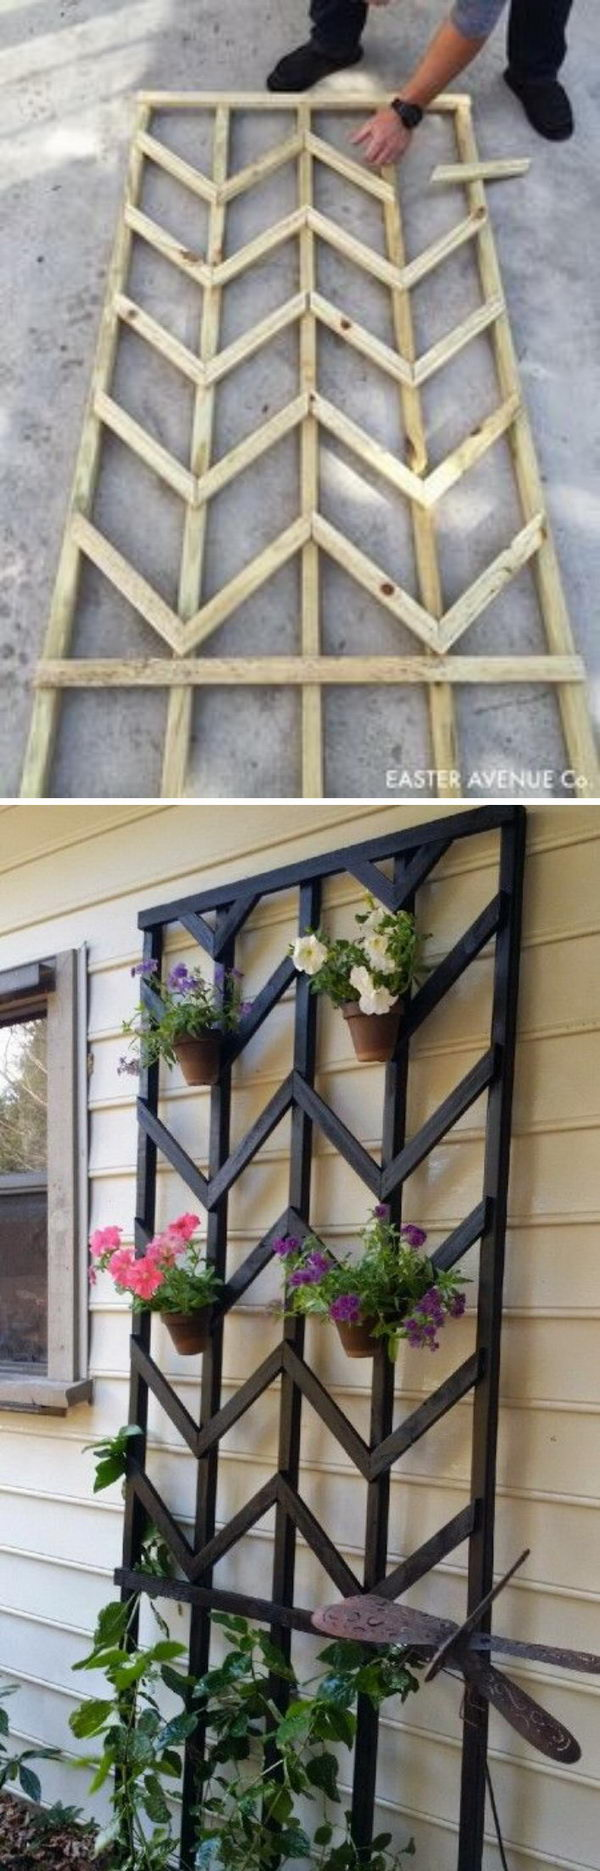 DIY Chevron Lattice Trellis With Tutorial.